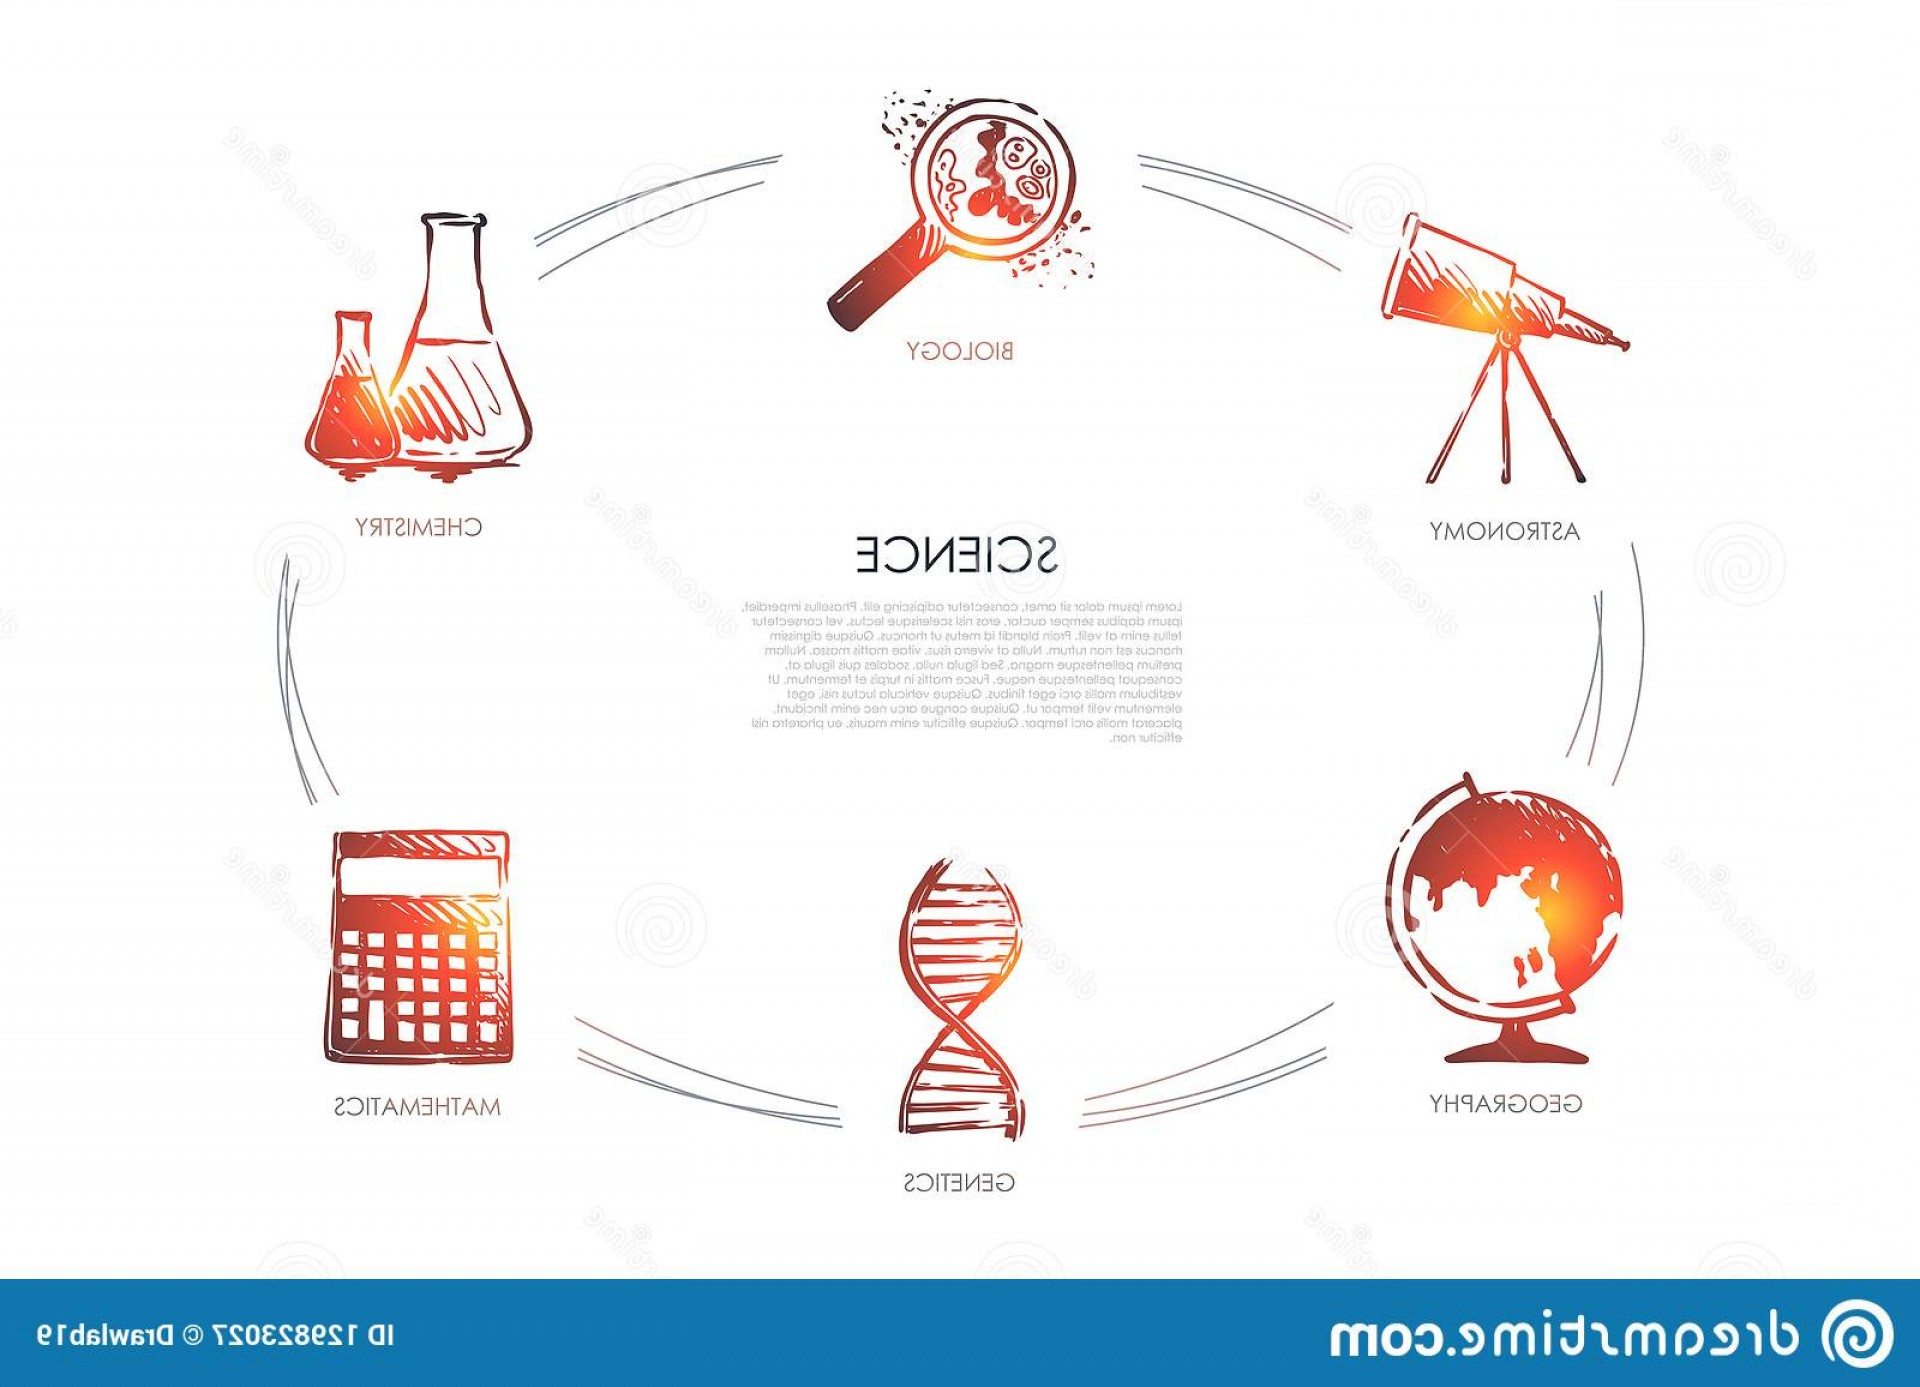 Vector In Science Meaning: Science Biology Astronomy Geography Genetics Mathematics Chemistry Vector Concept Set Hand Drawn Sketch Isolated Illustration Image